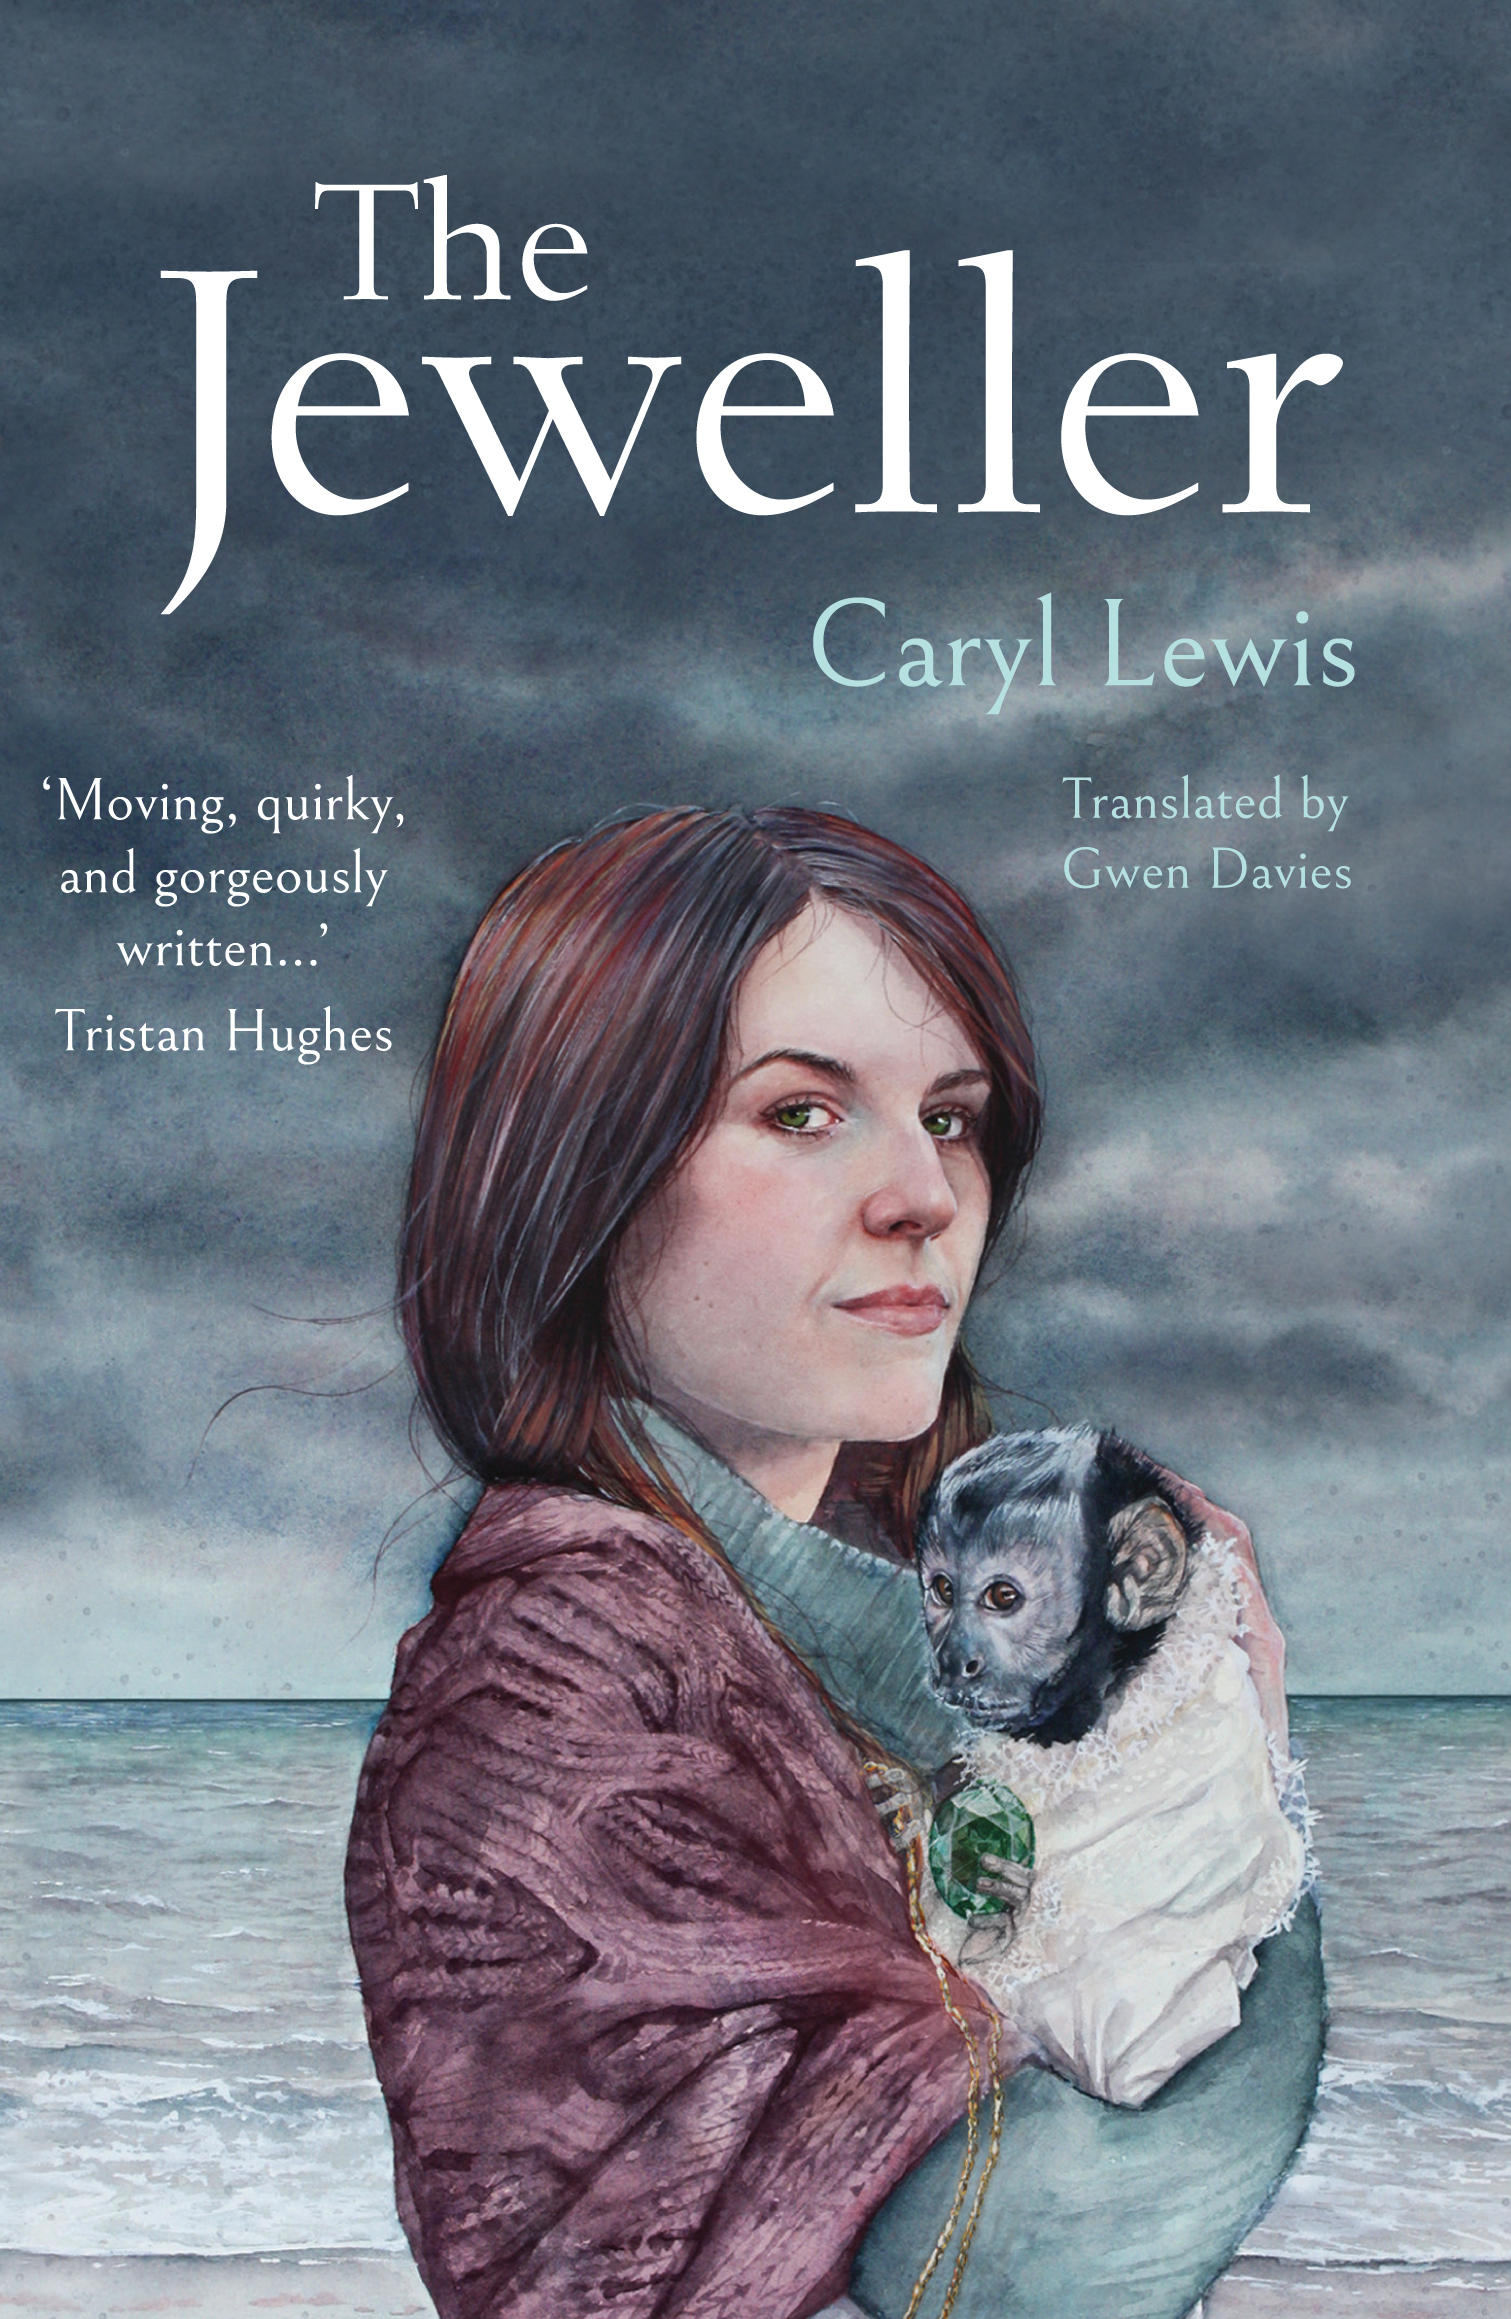 The_Jeweller_Cover_Large.jpg